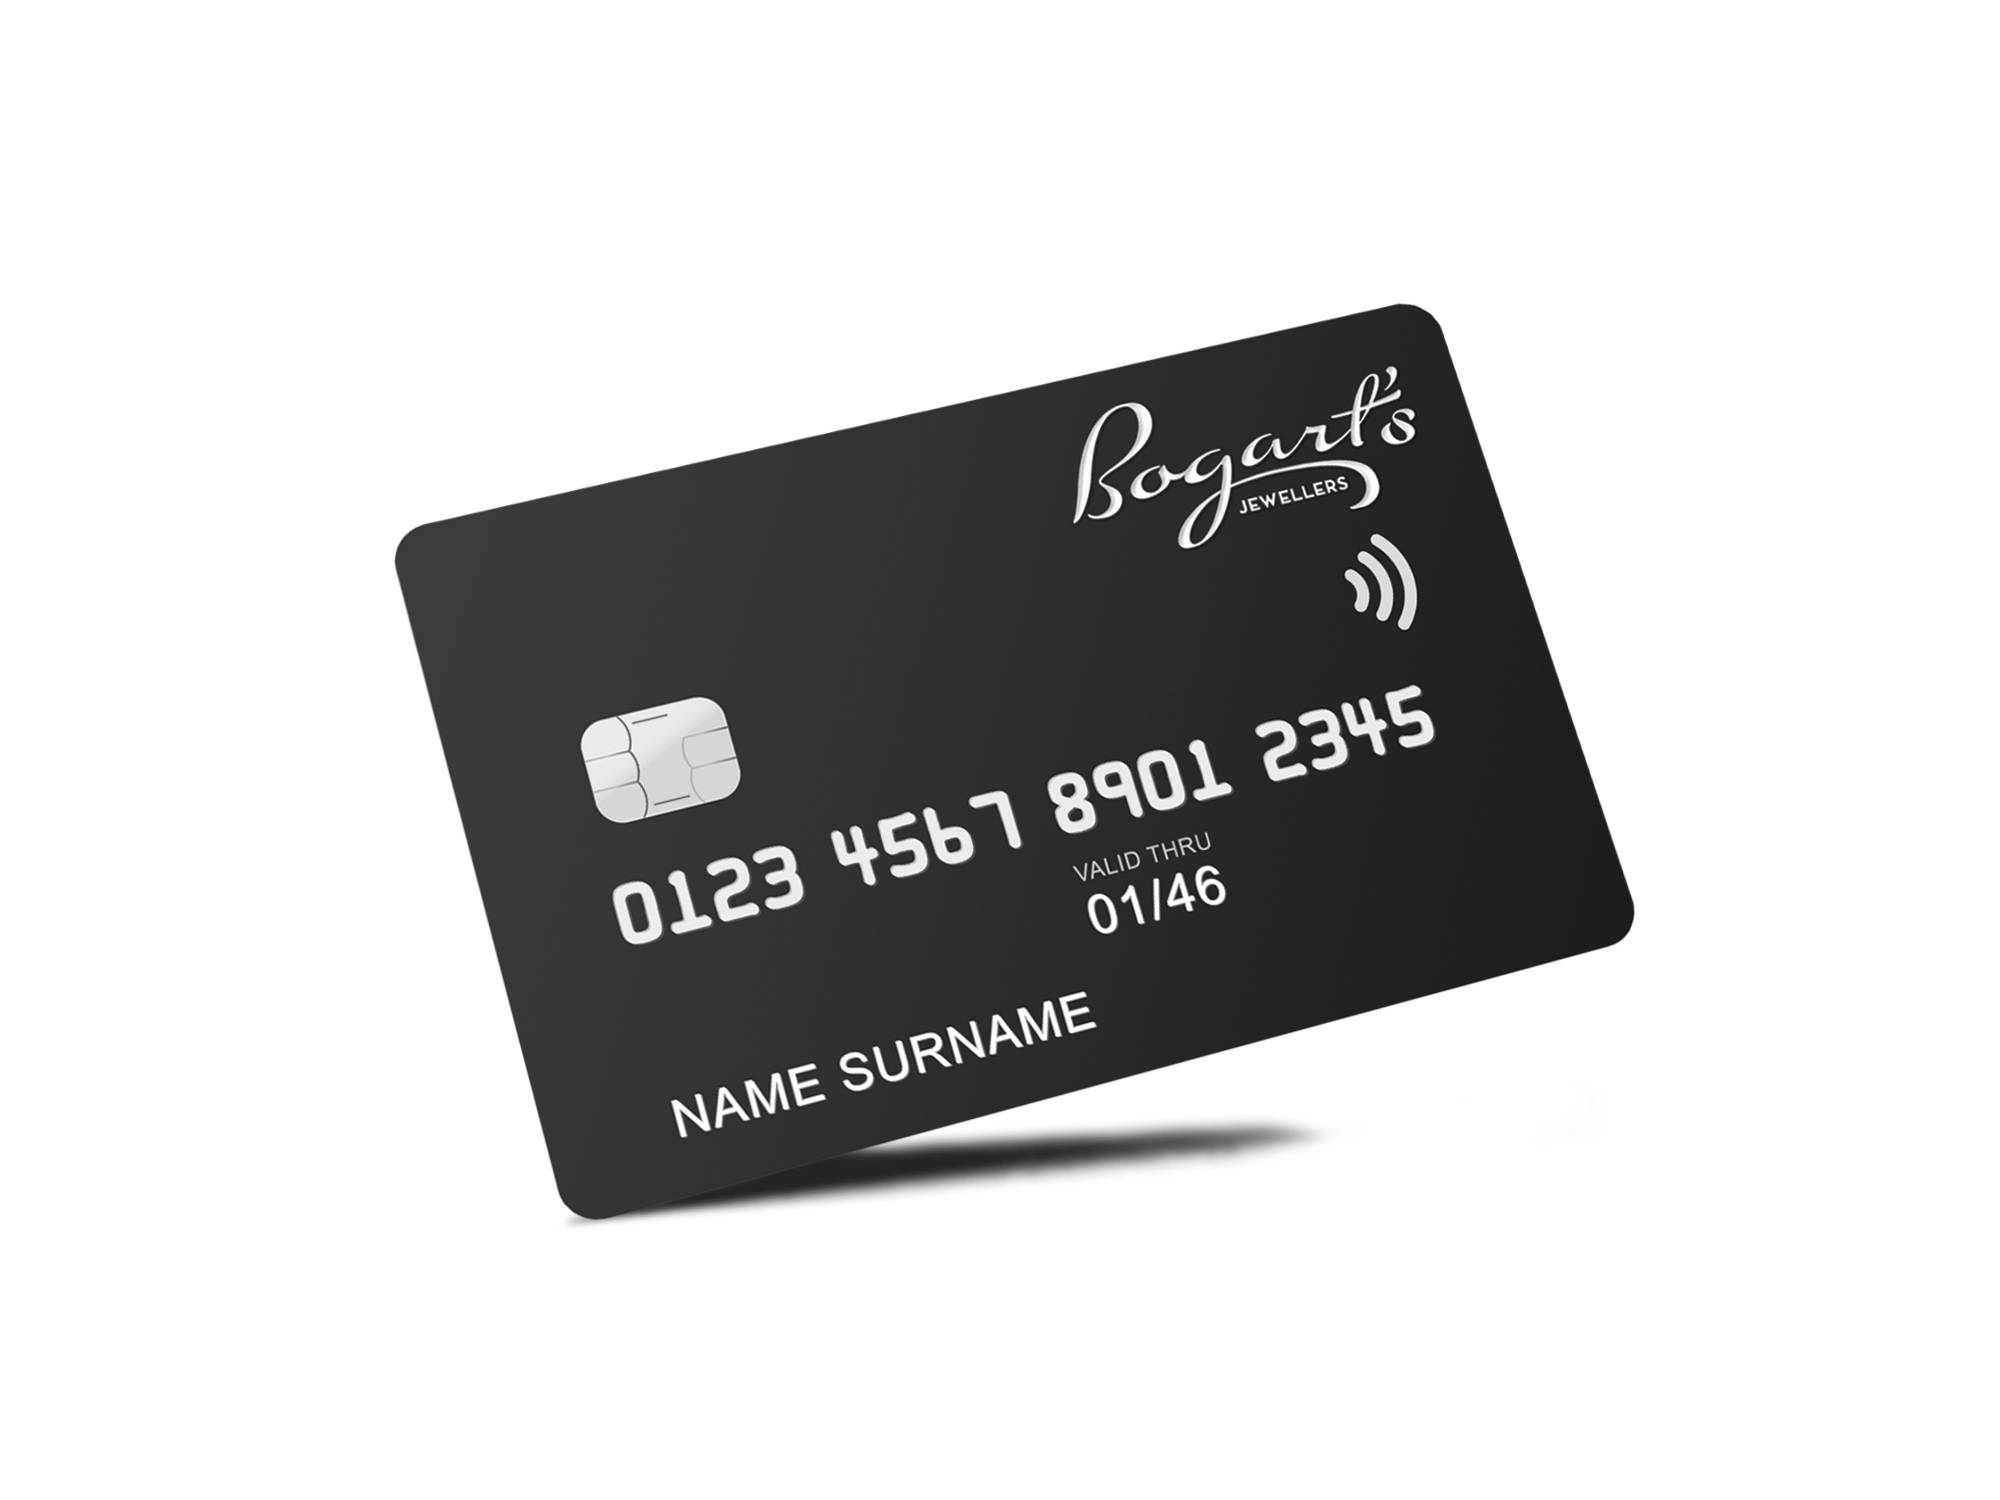 Bogart's virtual credit card for financing